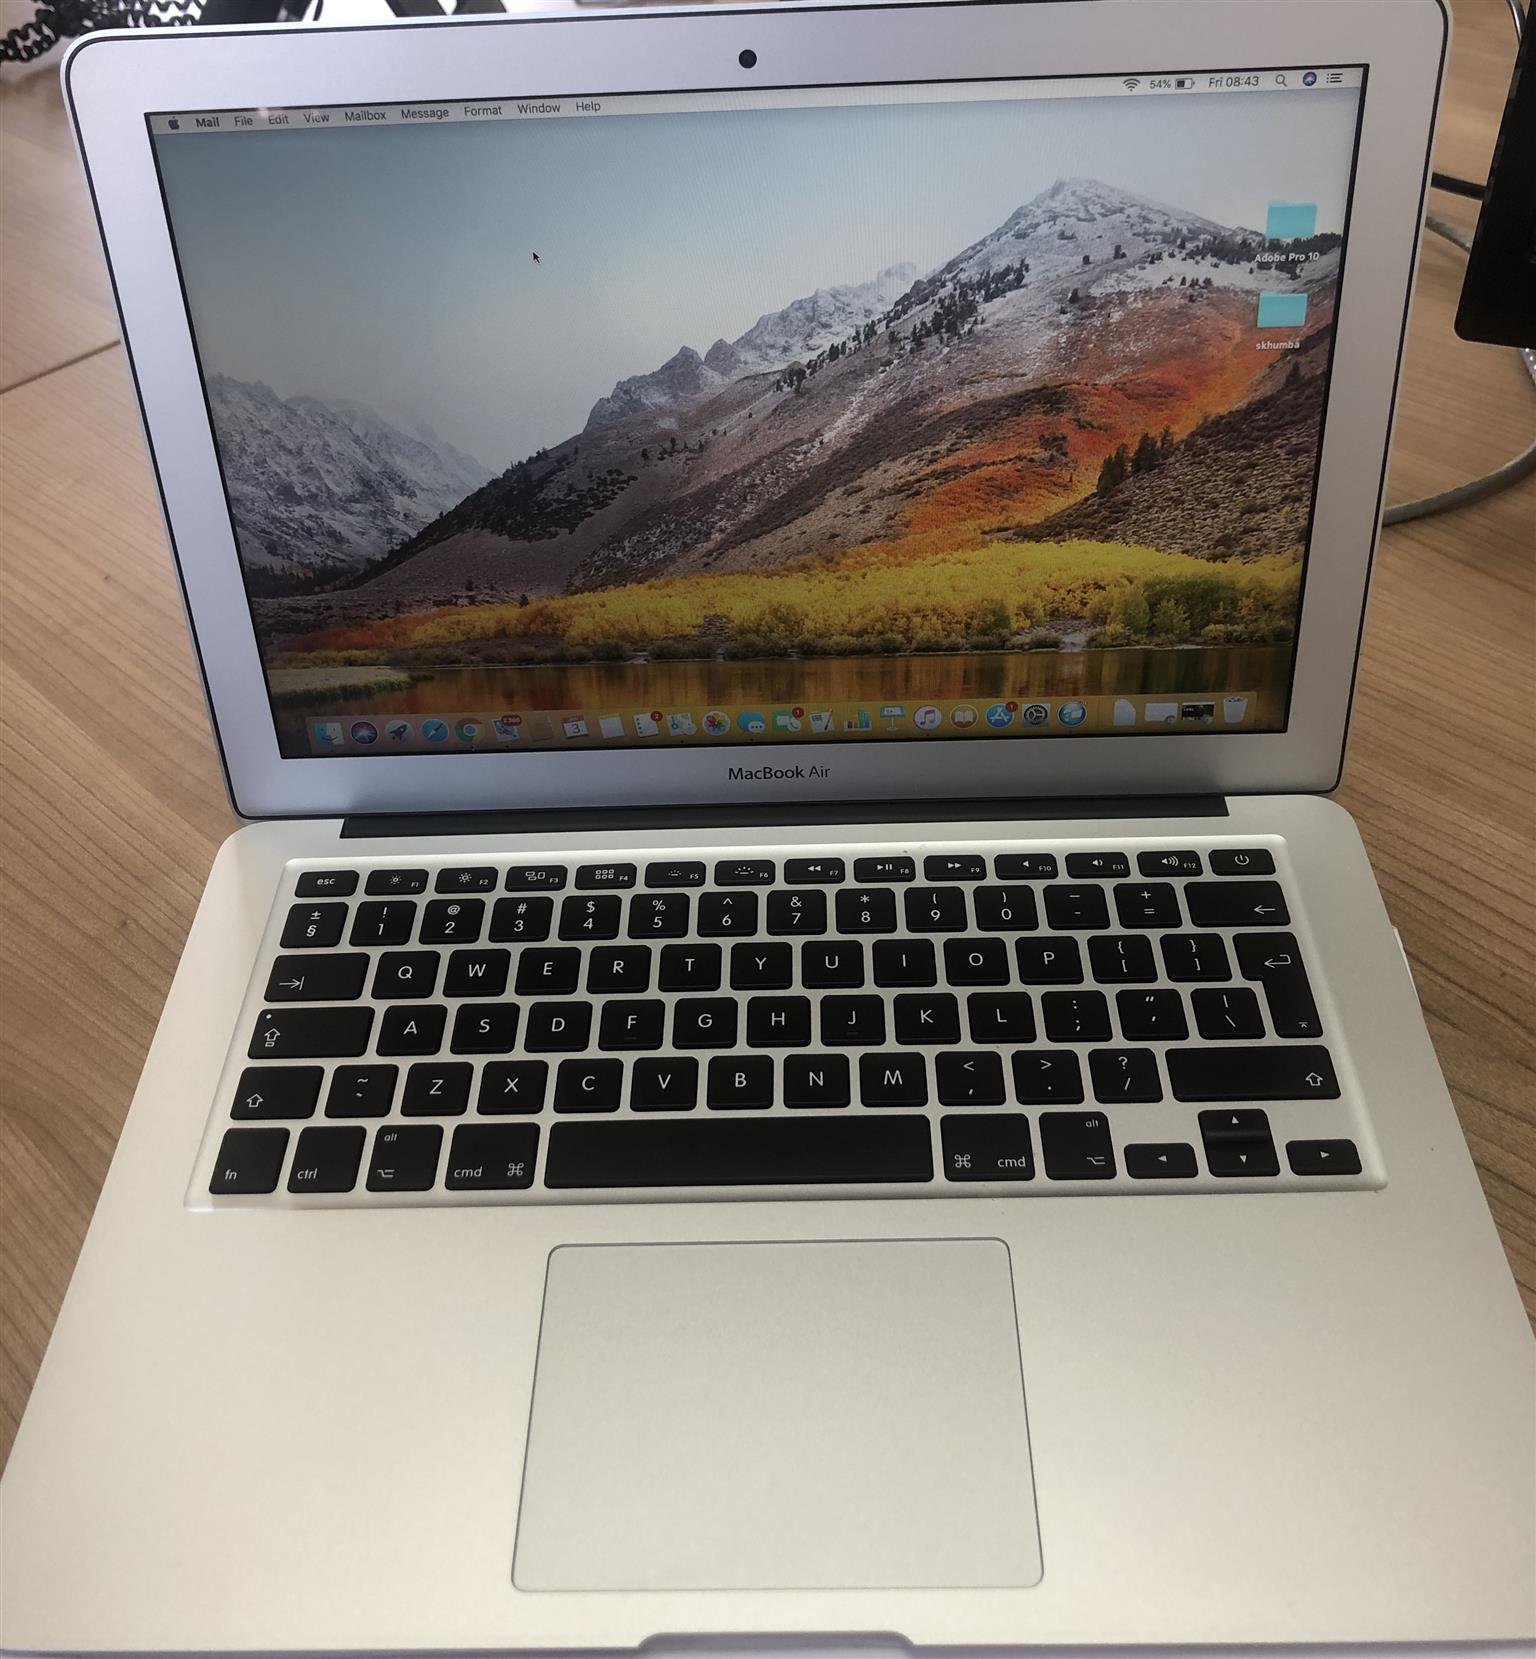 13-inch MacBook Air 1.8GHz dual-core Intel Core i5 128GB,memory 8GB, including charger.